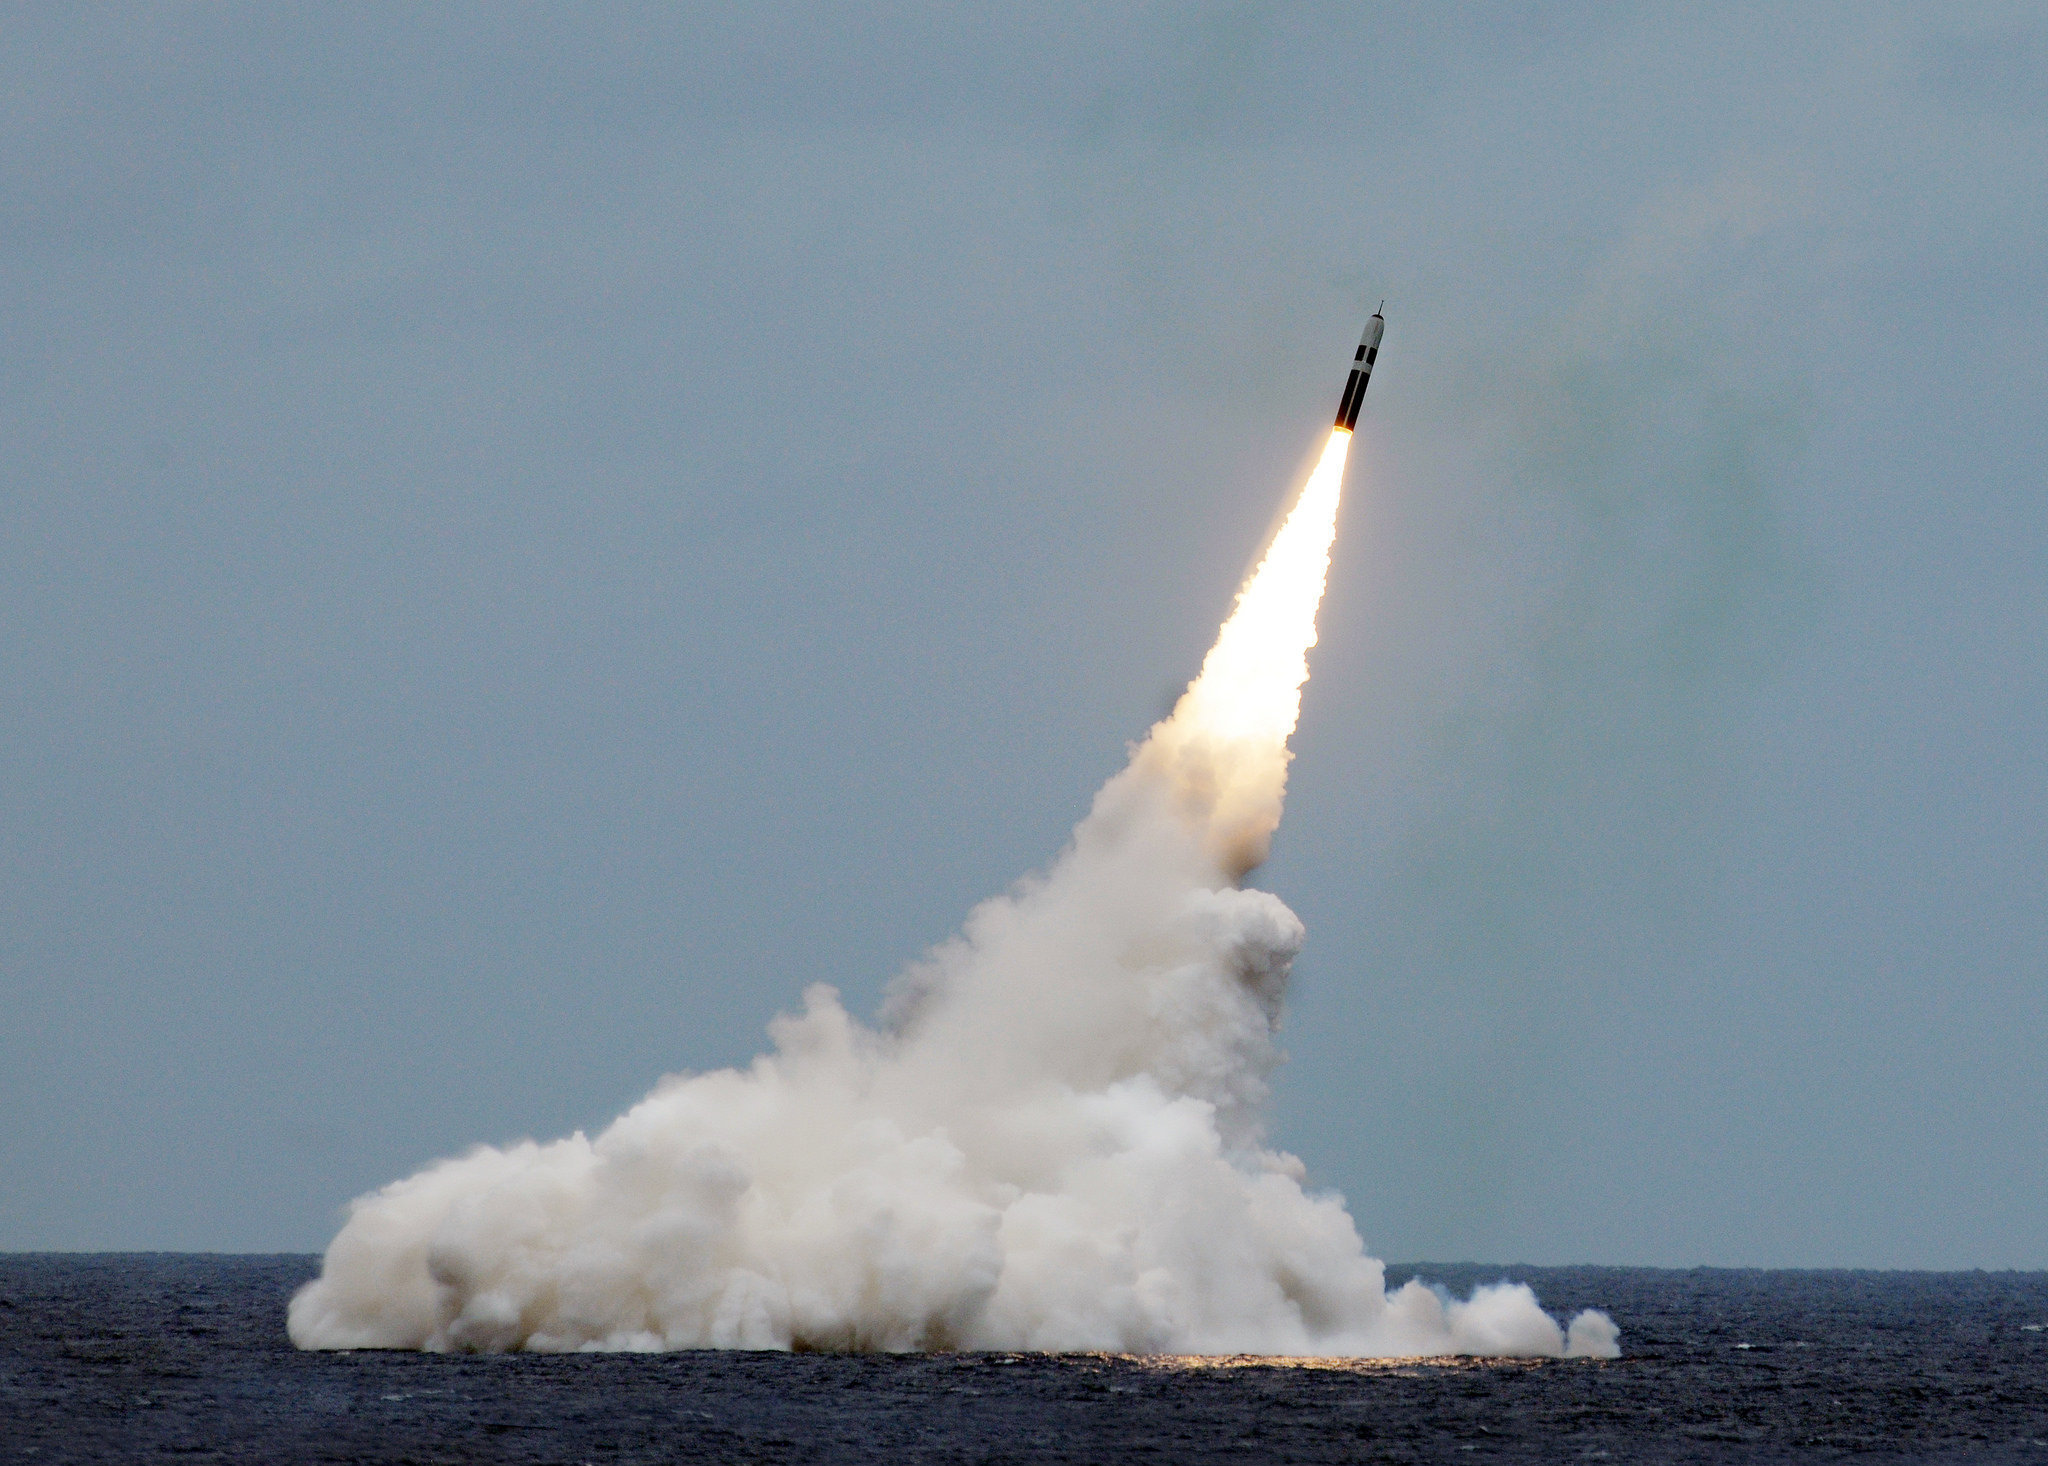 ATLANTIC OCEAN (August 31, 2016) An unarmed Trident II D5 missile launches from the Ohio-class fleet ballistic-missile submarine USS Maryland (SSBN 738) off the coast of Florida. The test launch was part of the U.S. Navy Strategic Systems Programs demonstration and shakedown operation certification process